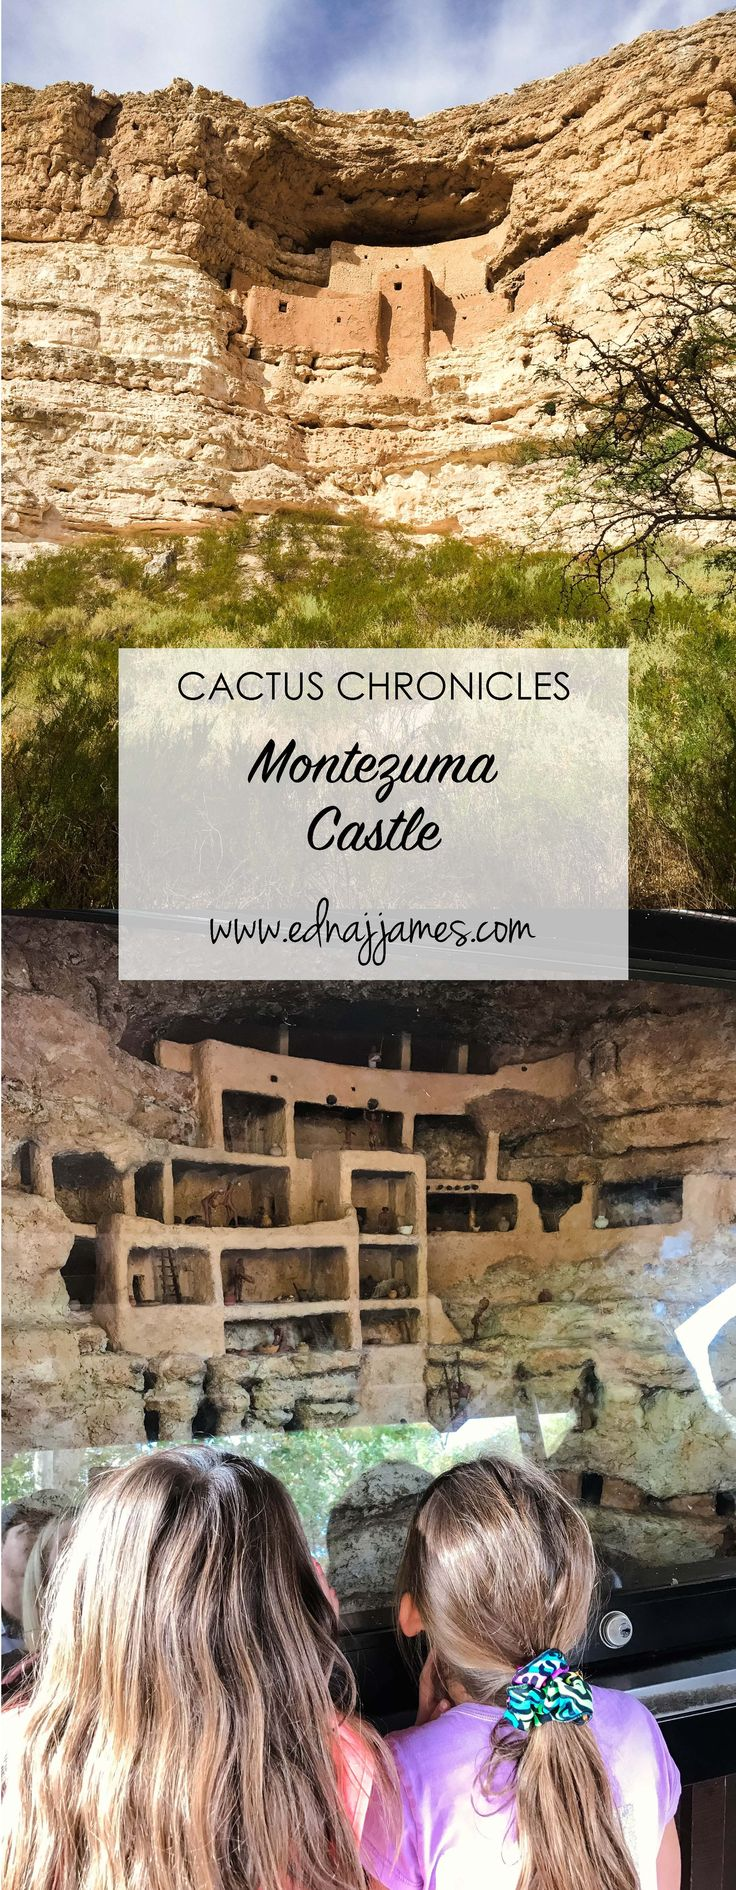 CACTUS CHRONICLES! We Love exploring all over Arizona, and this adventure at Monteuma's Castle was awesome!  www.ednajjames.com